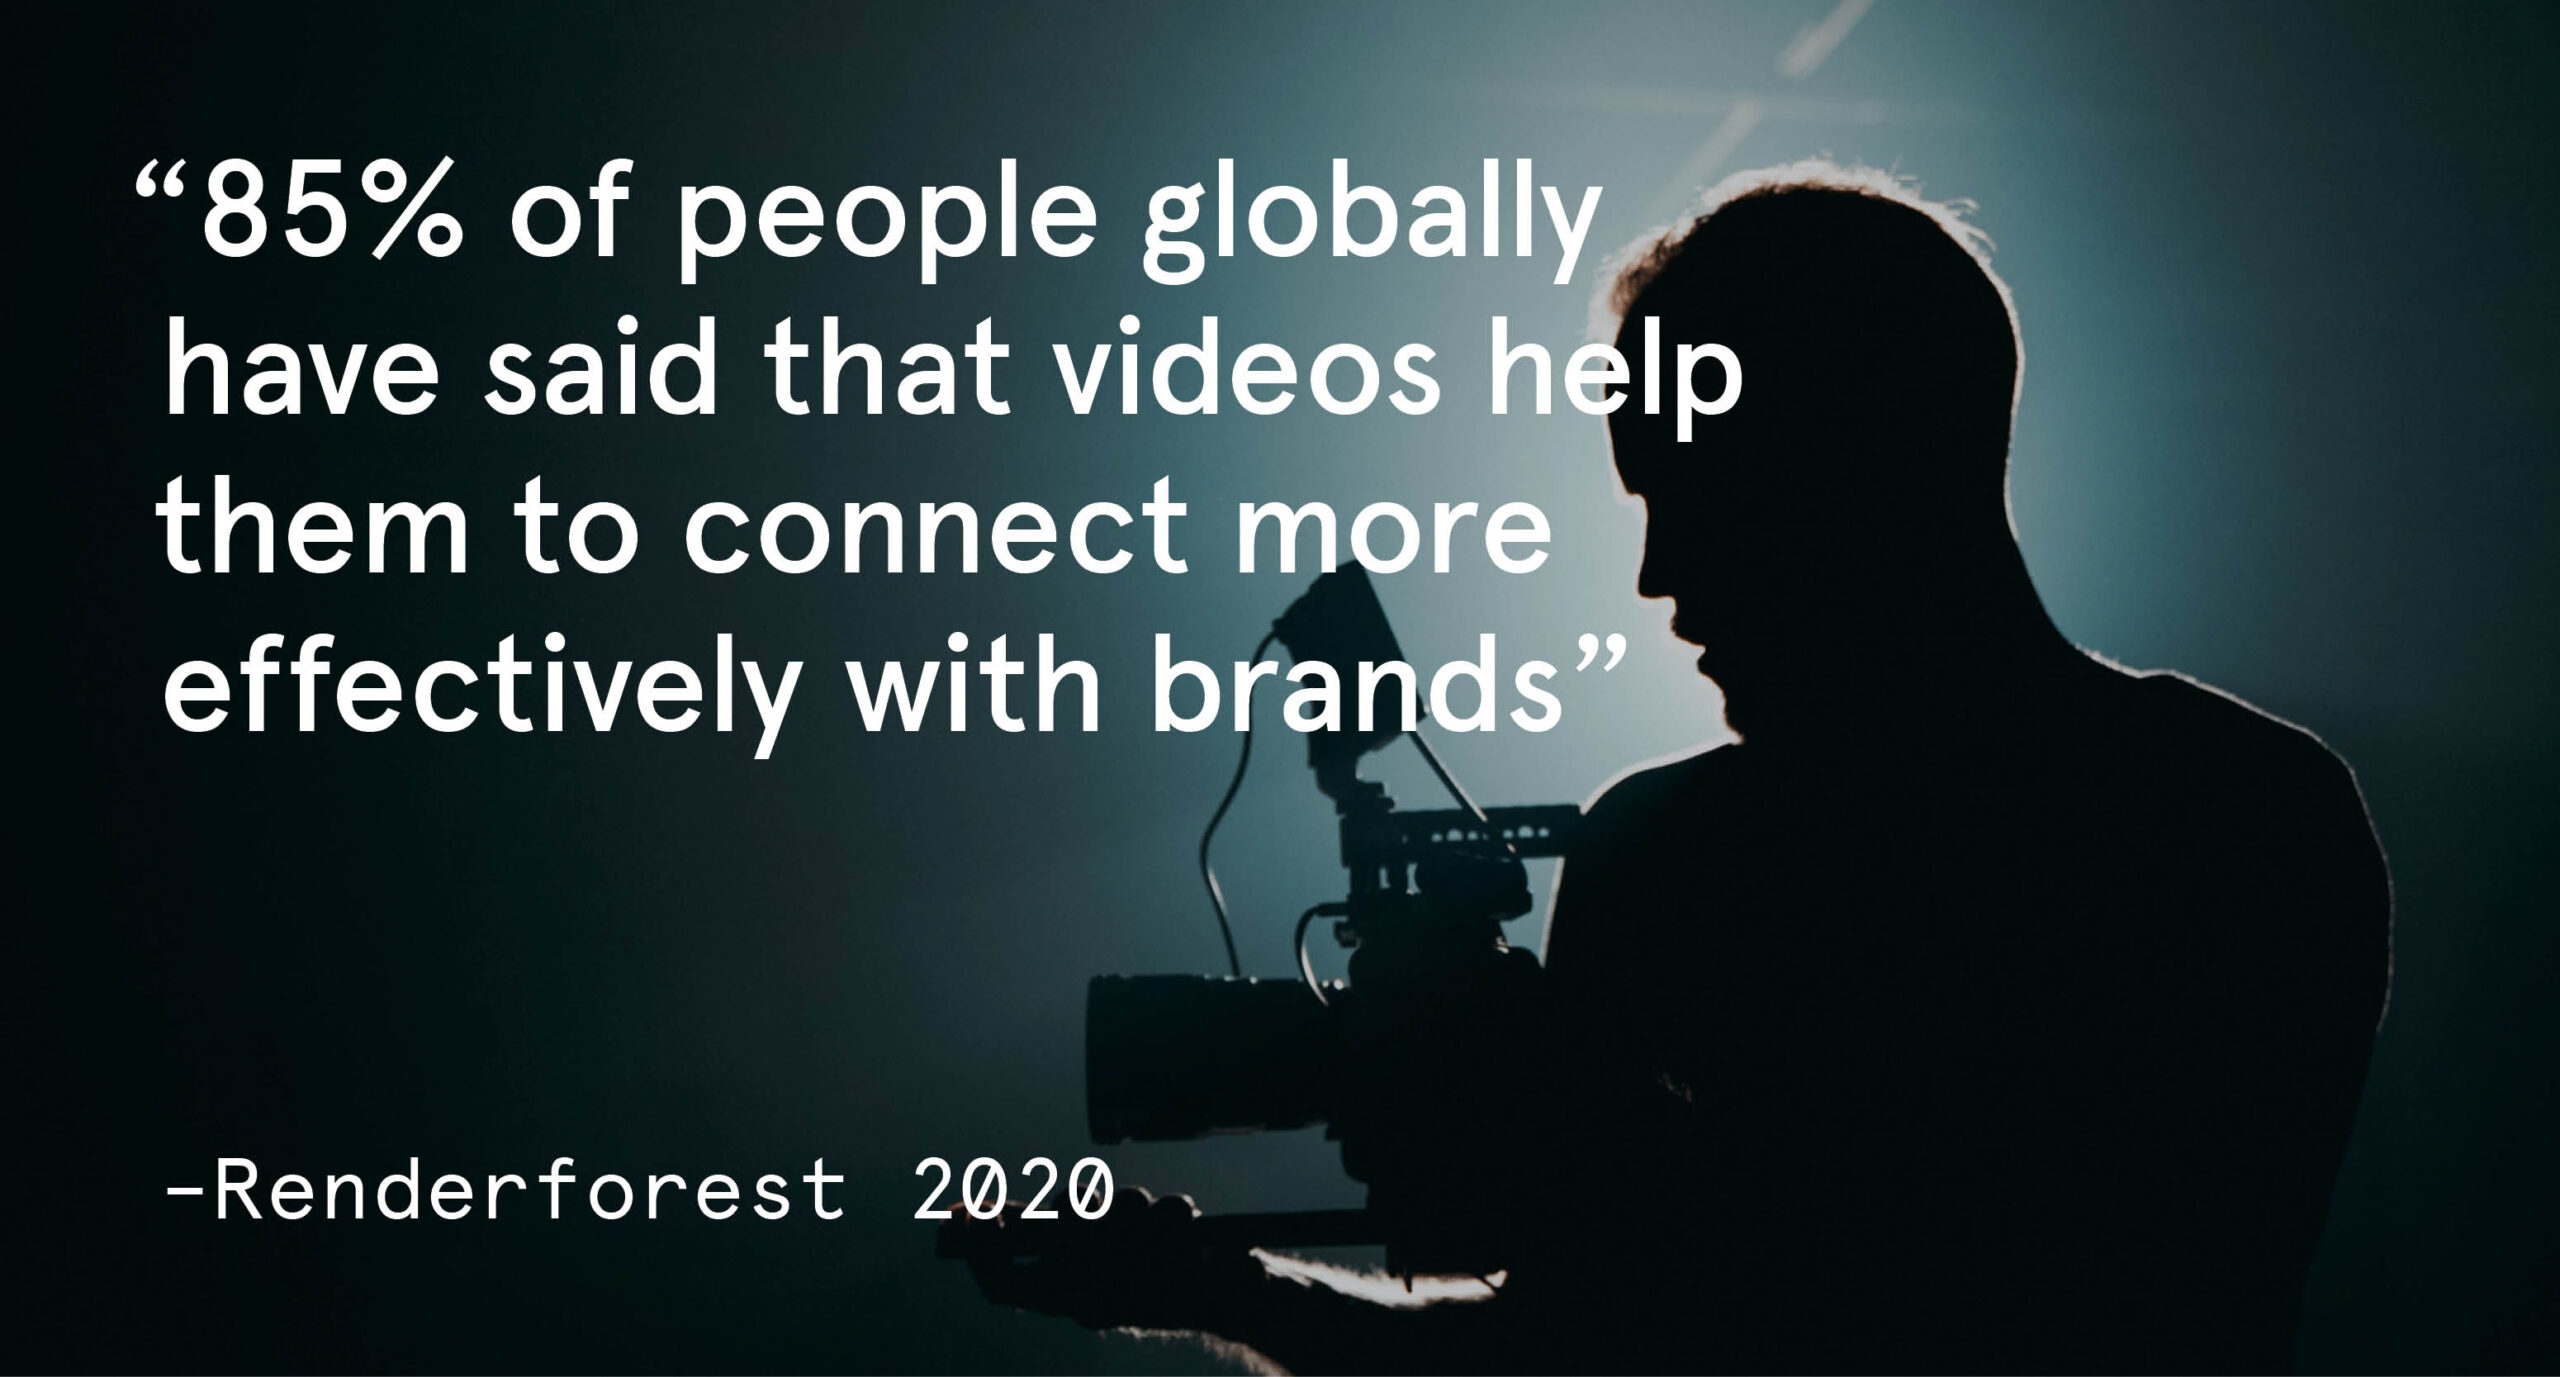 85% of people globally have said that videos help them to connect more effectively with brands (Renderforest, 2020).